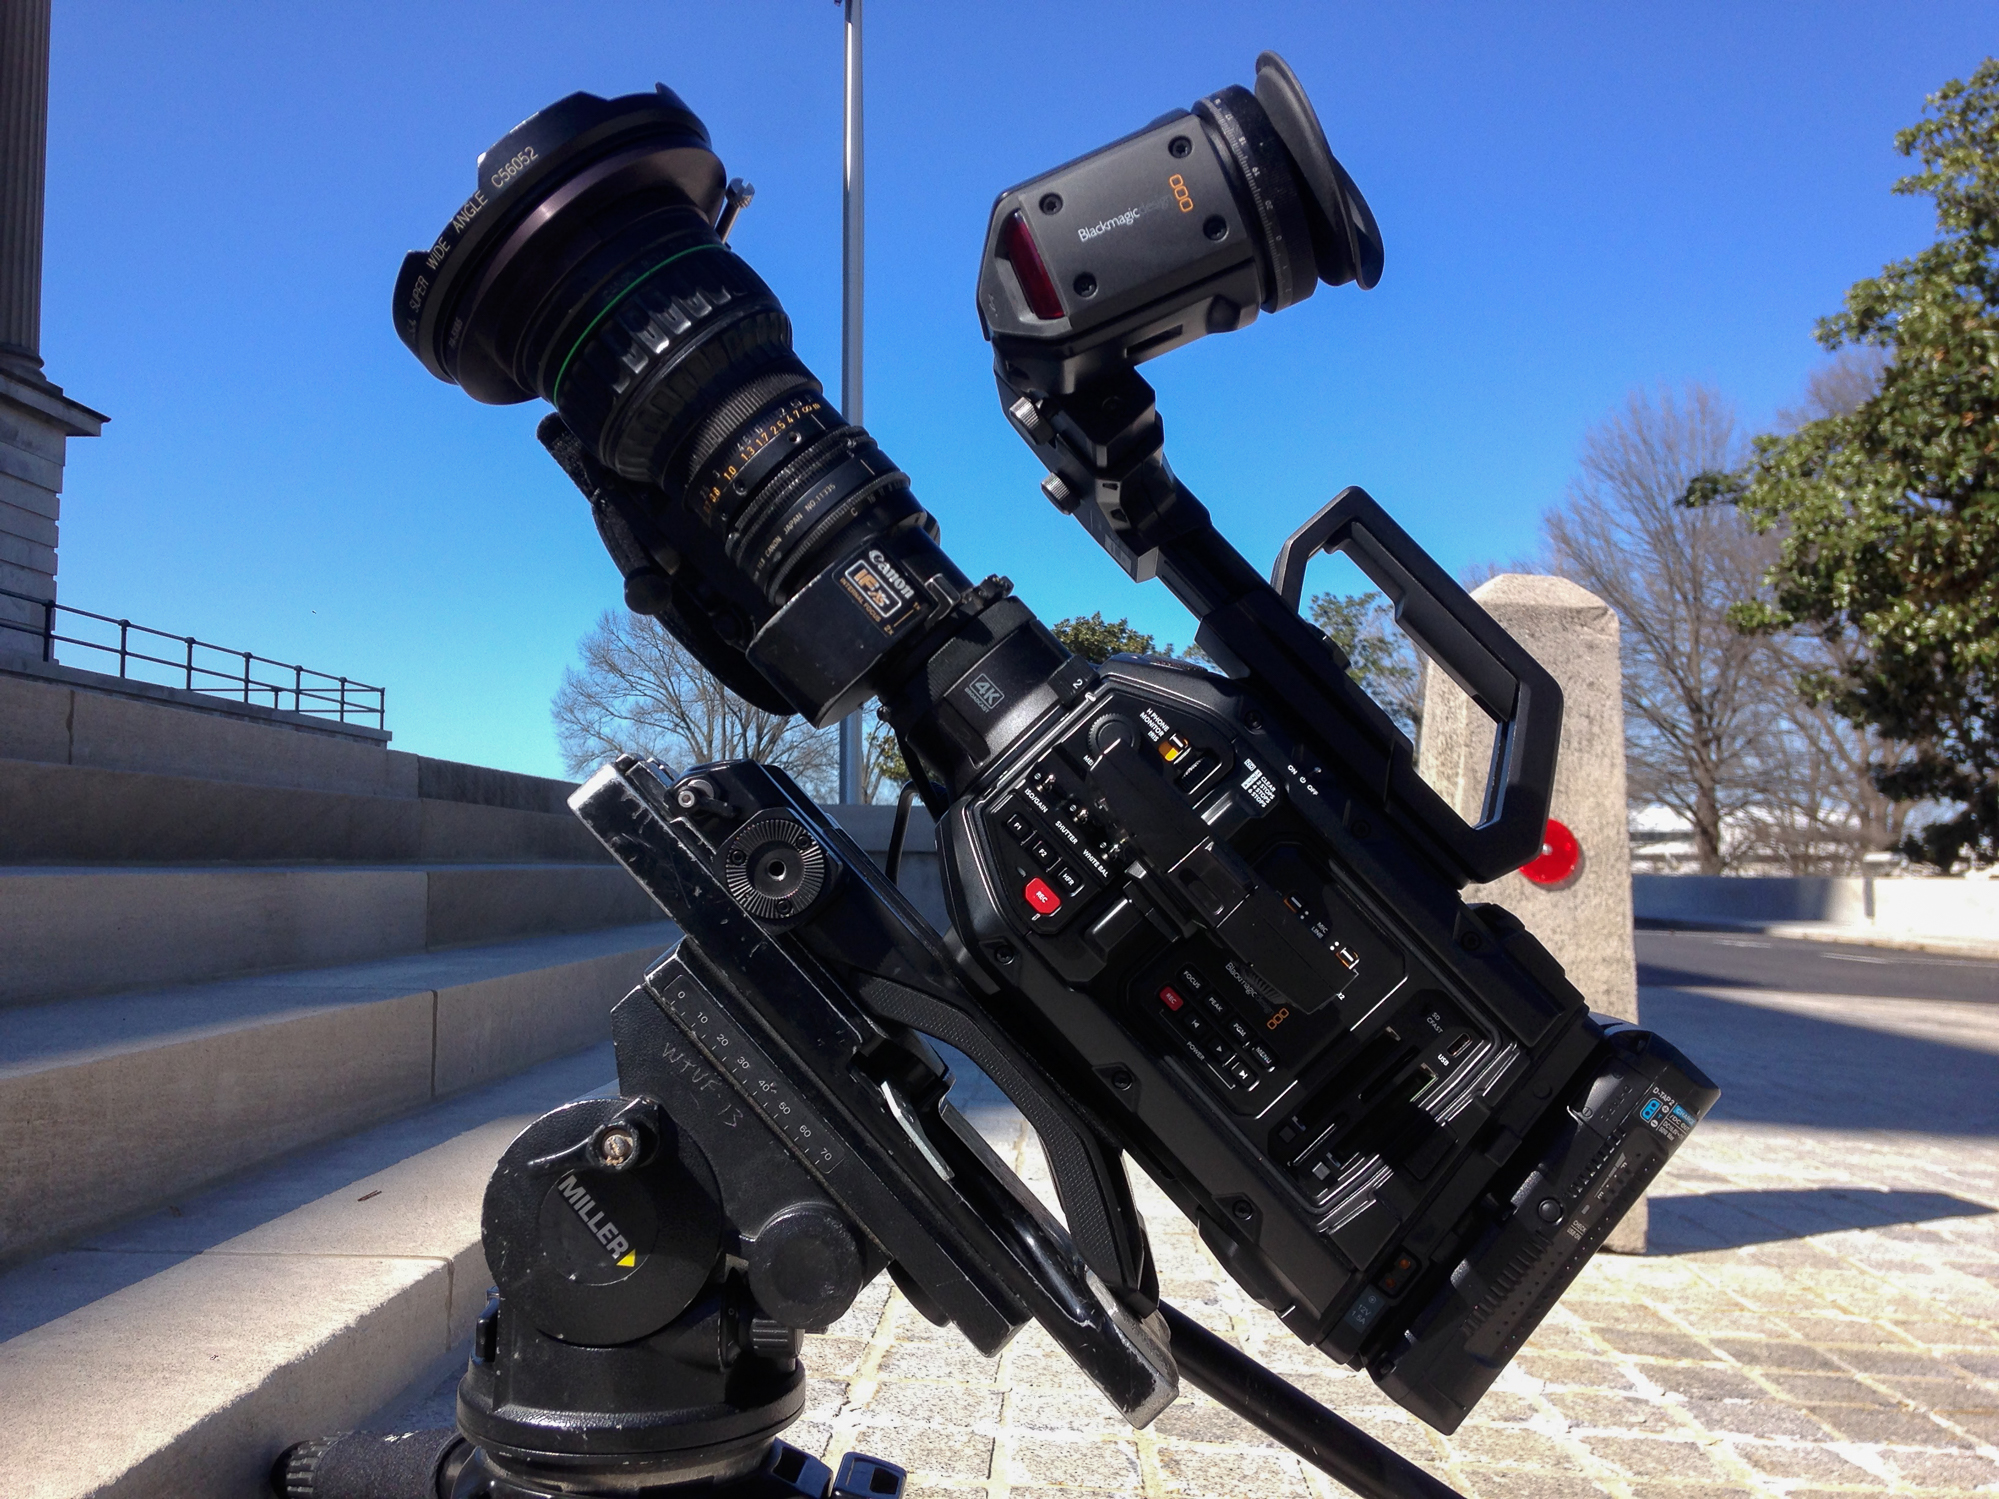 A Look At The Blackmagic Design URSA Broadcast | A Camera Review